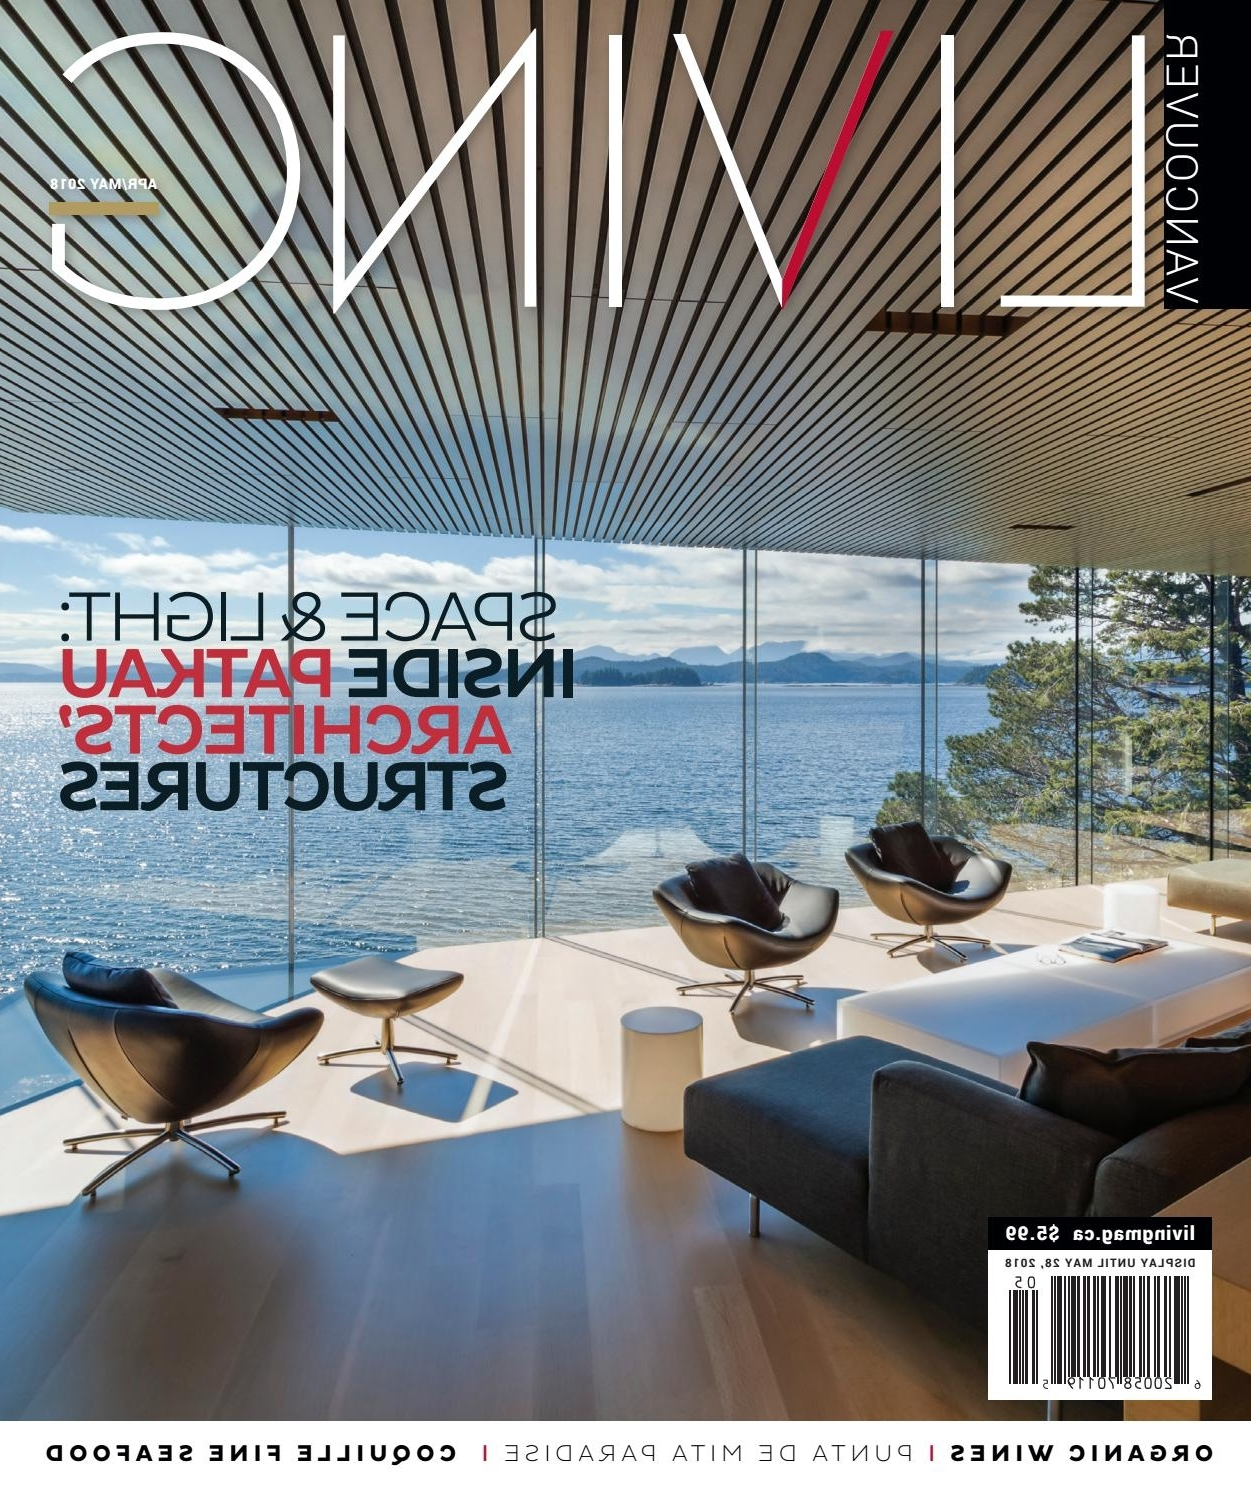 Vancouver Living April/may 2018Nsn Features - Issuu pertaining to 2018 Wyatt 6 Piece Dining Sets With Celler Teal Chairs